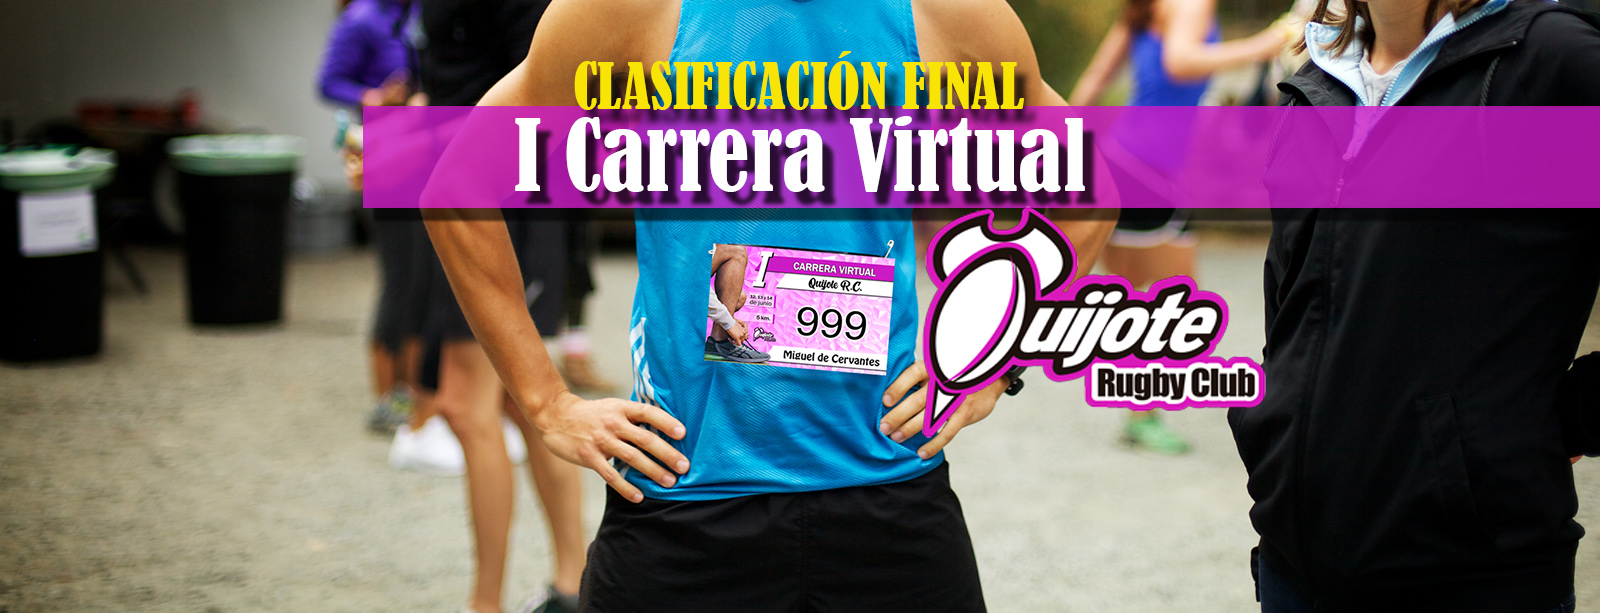 Ranking final de la I Carrera Virtual del Quijote RC